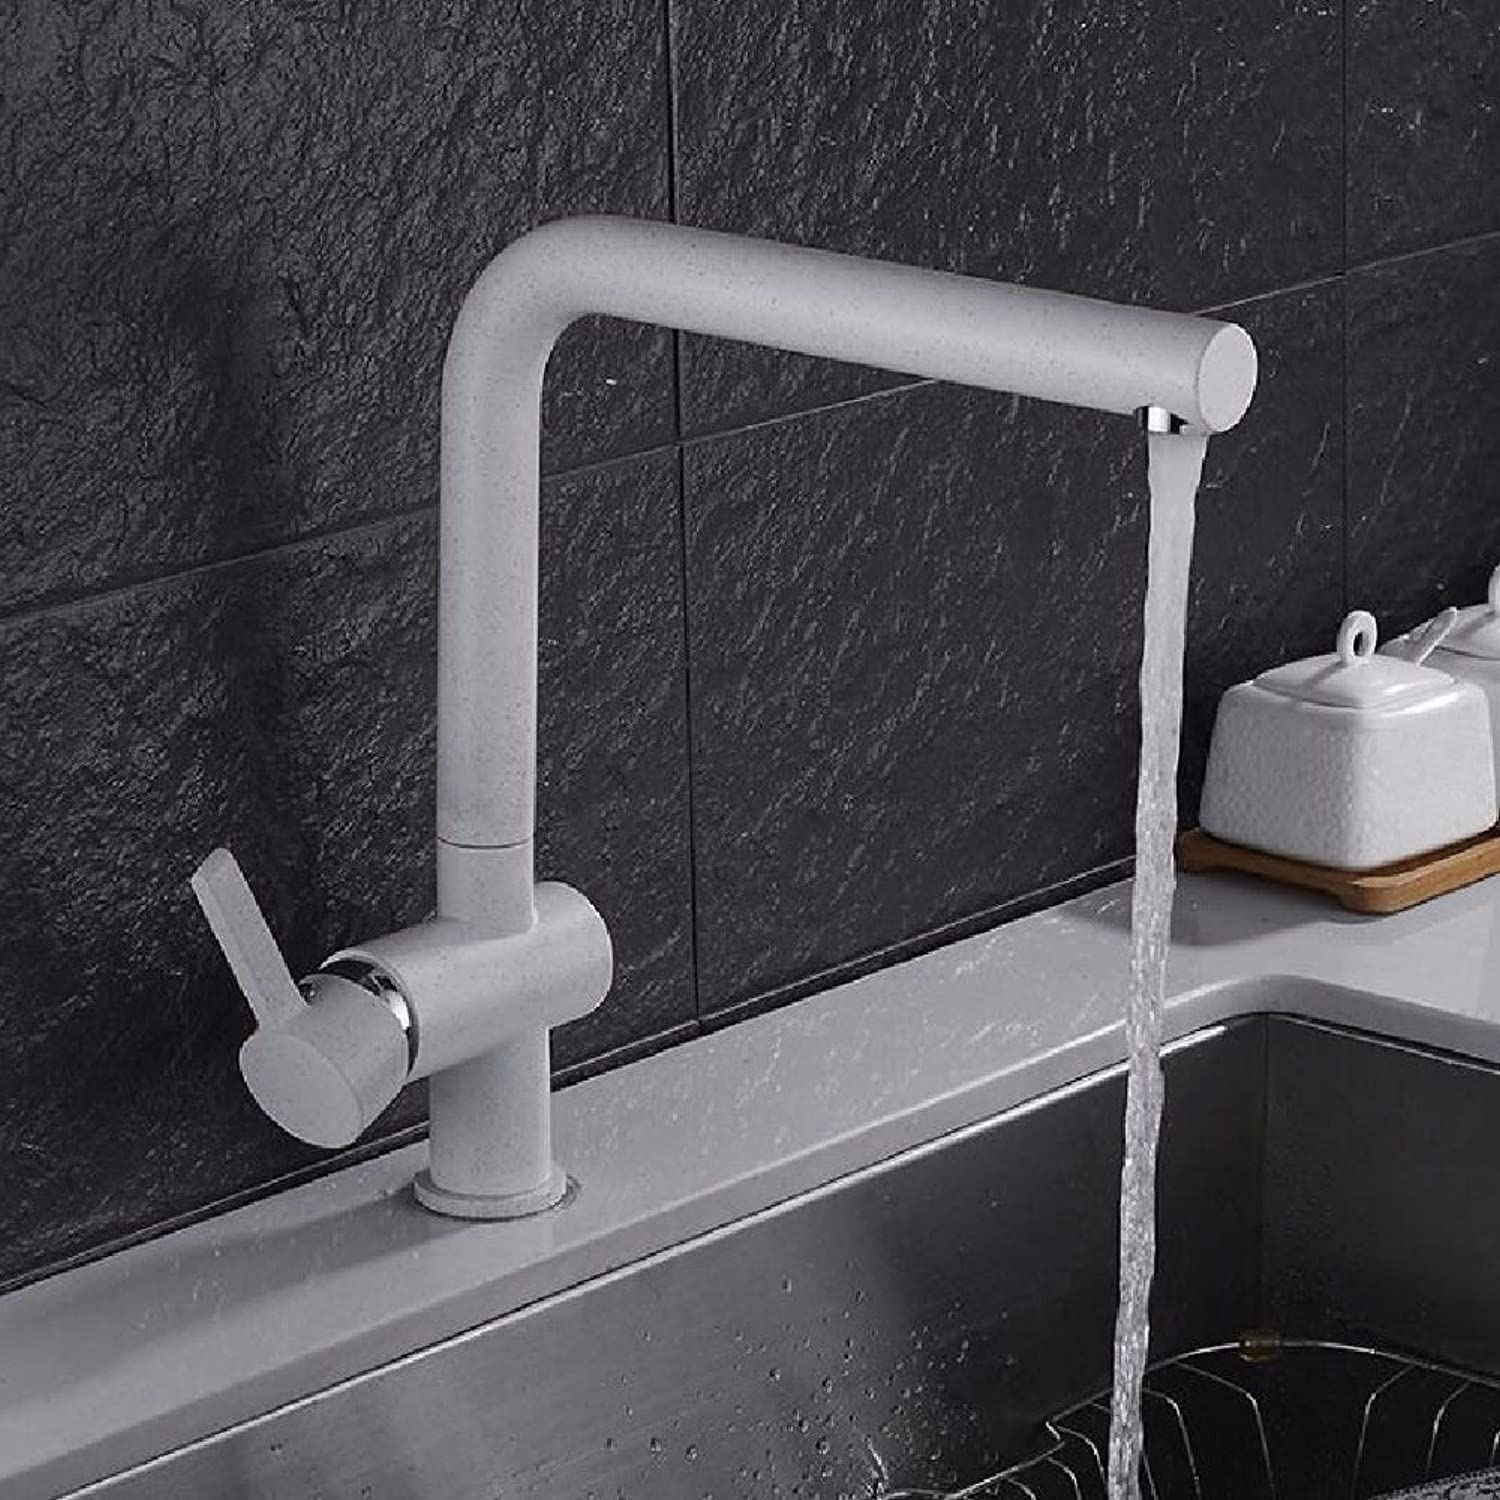 Commercial Single Lever Pull Down Kitchen Sink Faucet Brass Constructed Polished Kitchen Mixer Tap redatable Sink Sink Hot and Cold Faucet